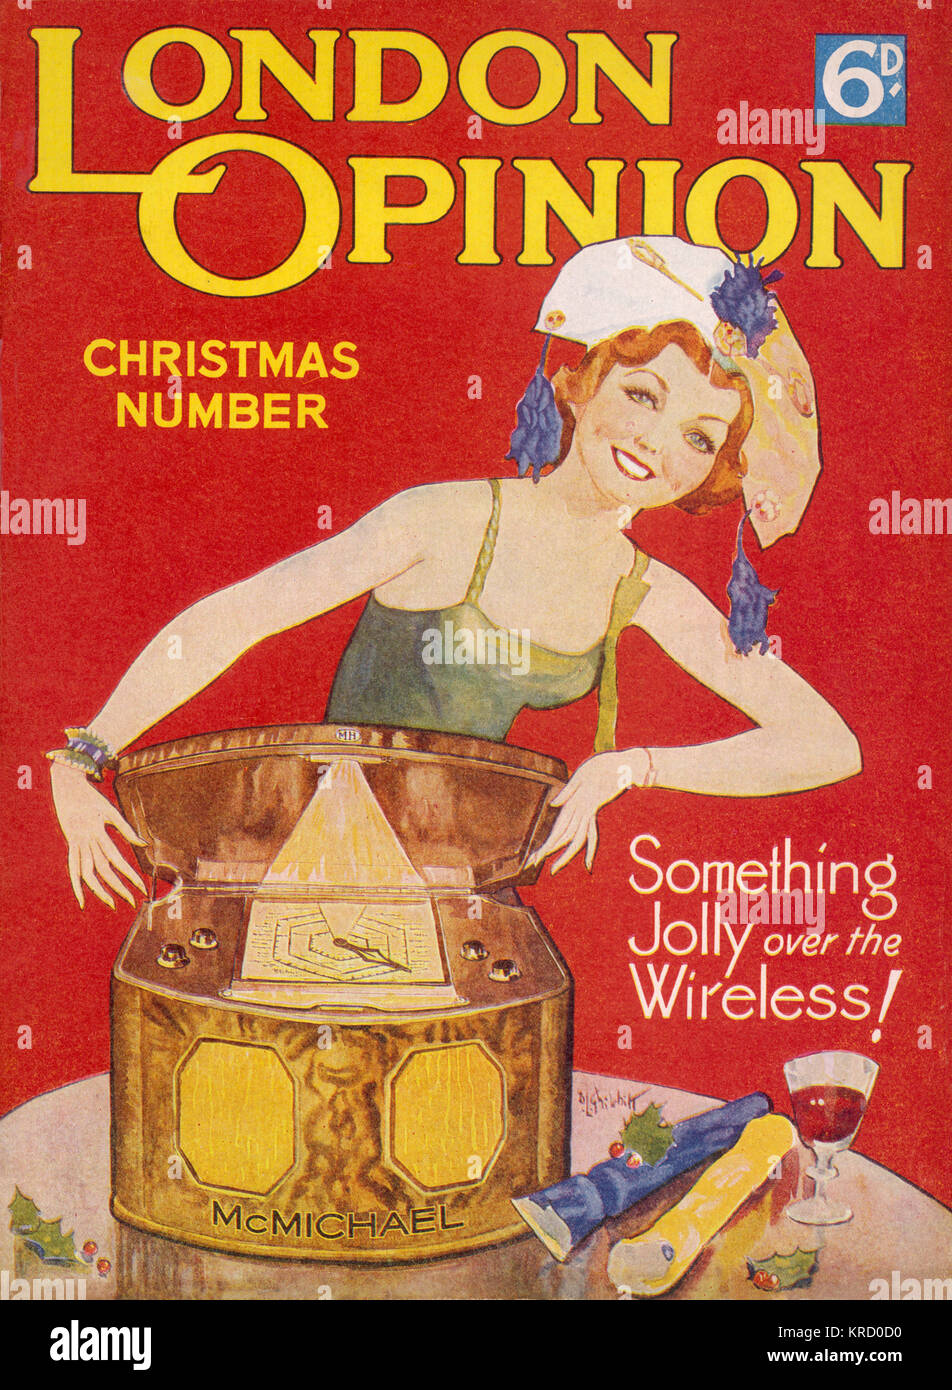 A jolly looking woman wearing  a party dress and paper hat  opens the top of an old  wireless set, ready to play - Stock Image